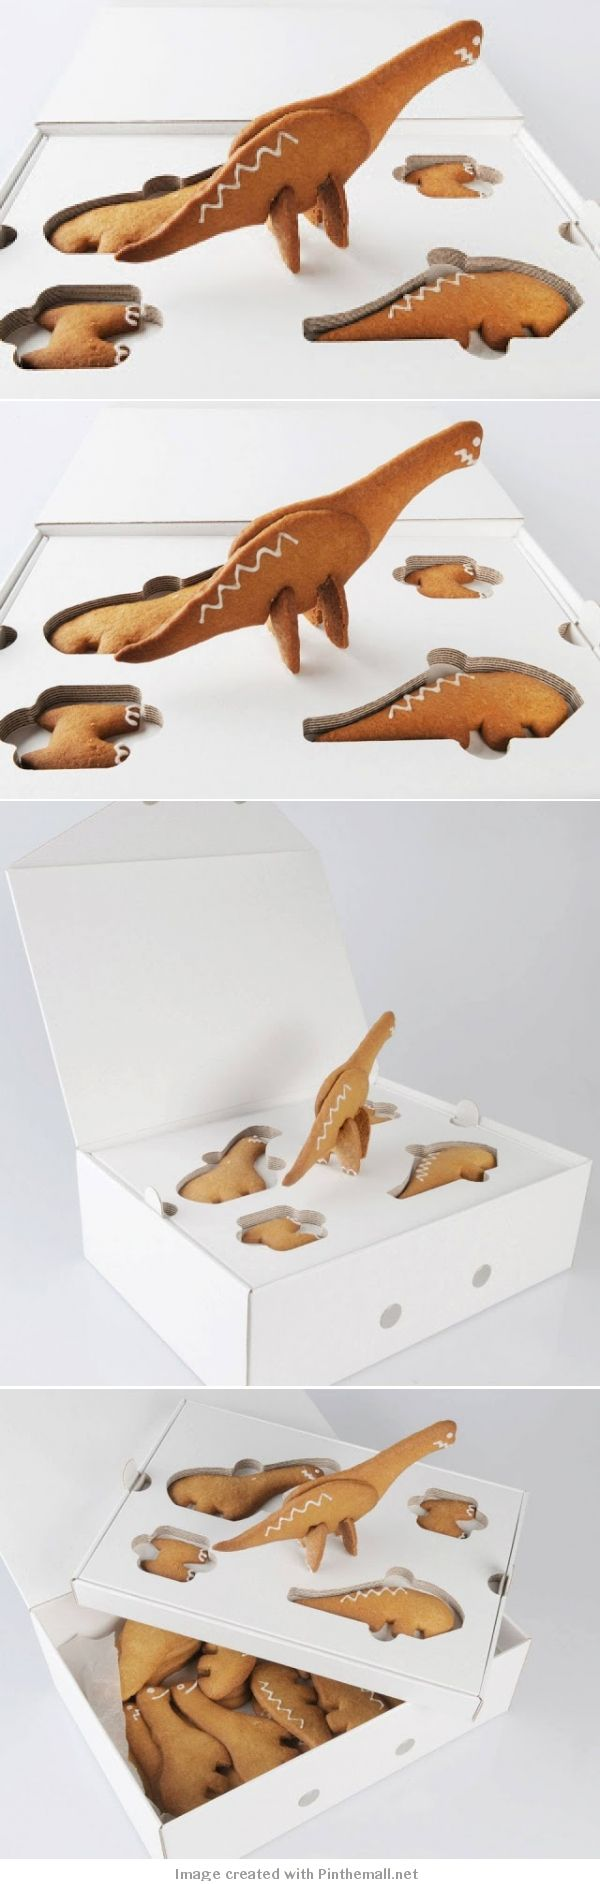 let's go for a walk with dinosaurs cute #packaging curated by Packaging Diva PD - created via http://www.packagingoftheworld.com/2013/07/walking-with-dinosaursbiscuits.html